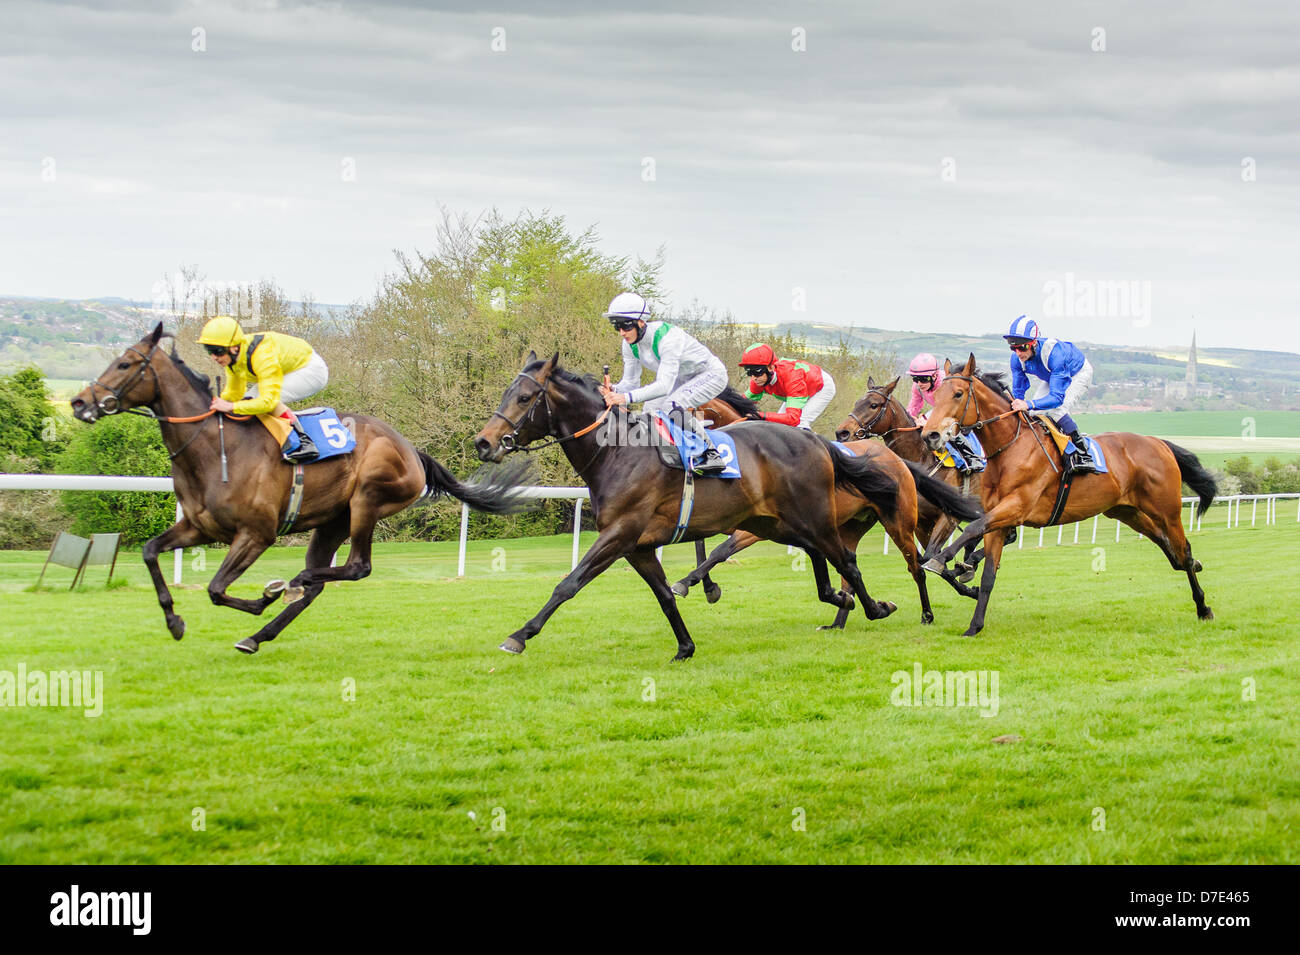 Salisbury Racecourse is a flat racecourse in the United Kingdom featuring thoroughbred horse racing, 3 miles southwest Stock Photo